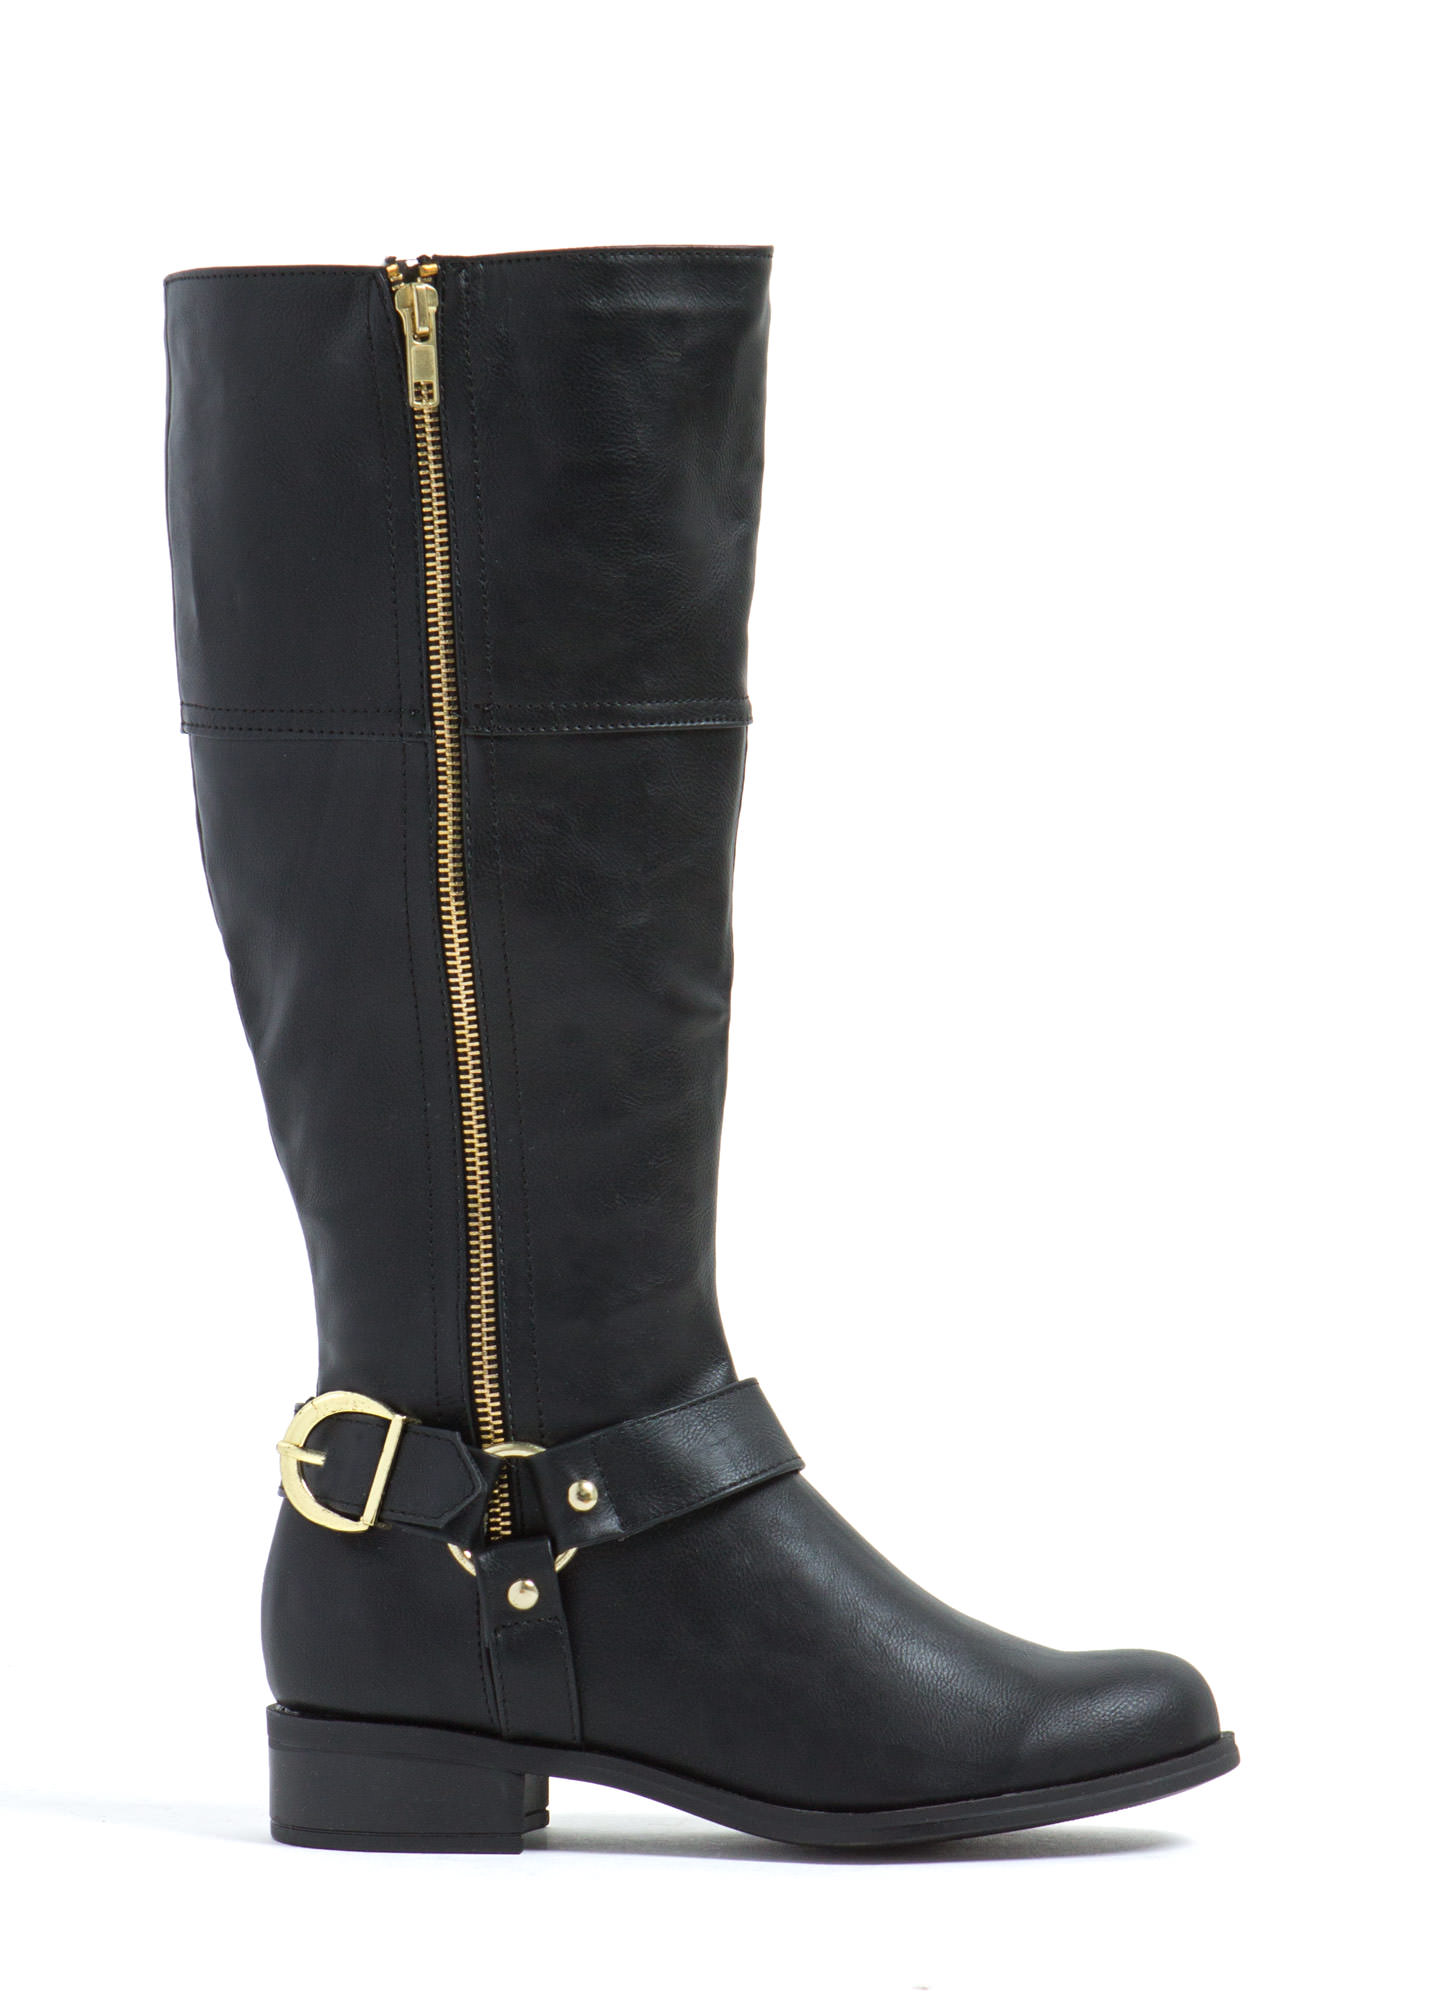 Zip It Good Riding Boots BLACKGOLD